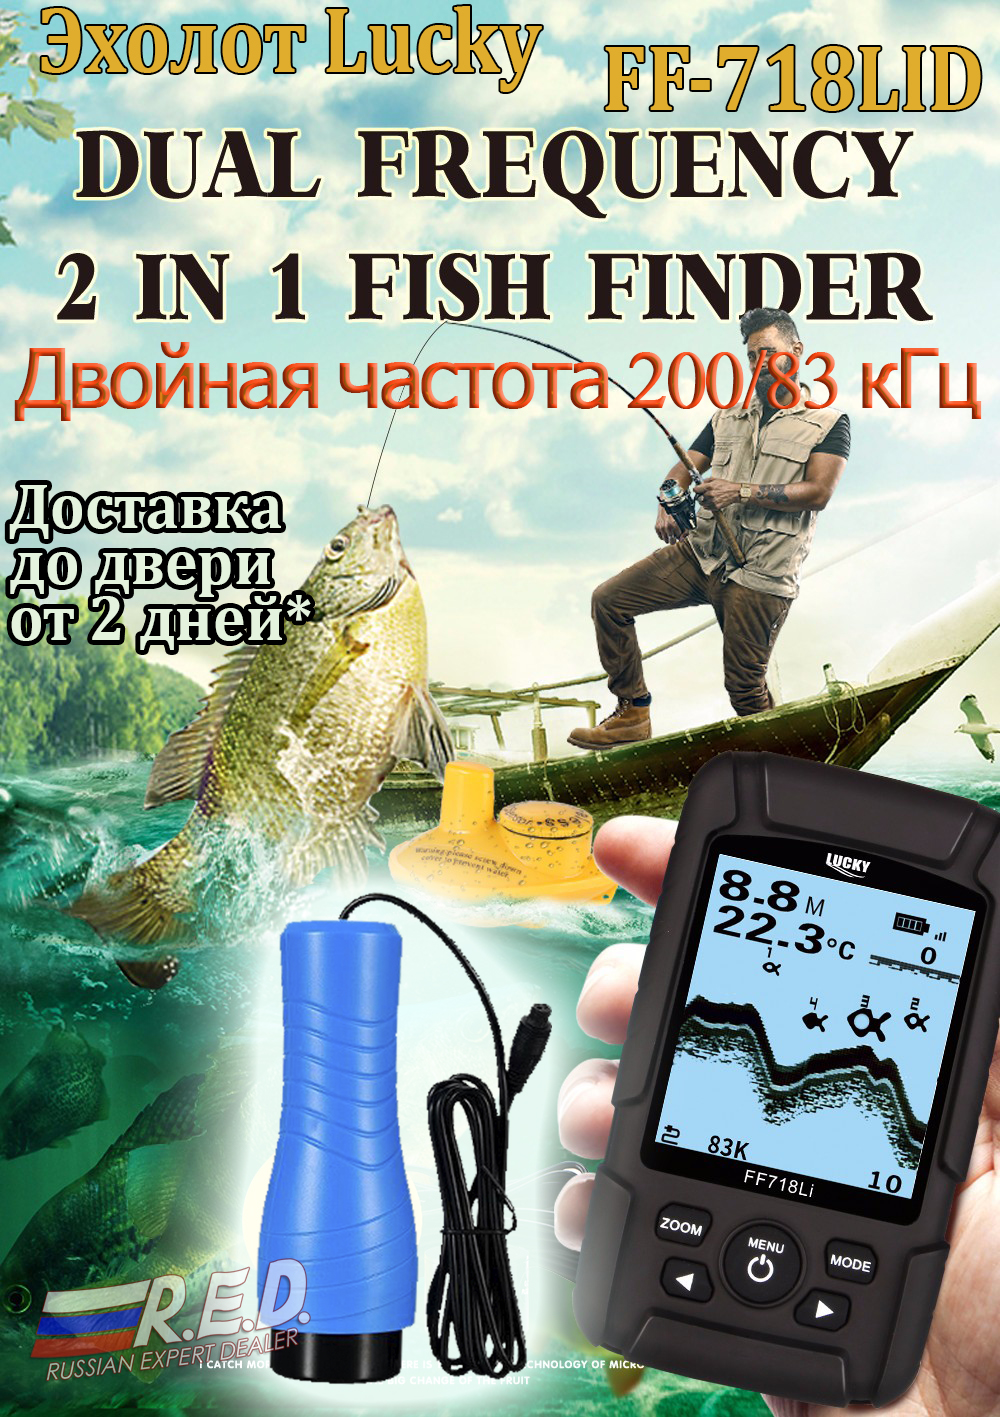 LUCKY FF718LiD Waterproof Echo Sounder Dual Sonar Frequency Wireless Sonar & Wired 200KHz/83KHz 100M Detection lucky ff 718 duo с зимним датчиком